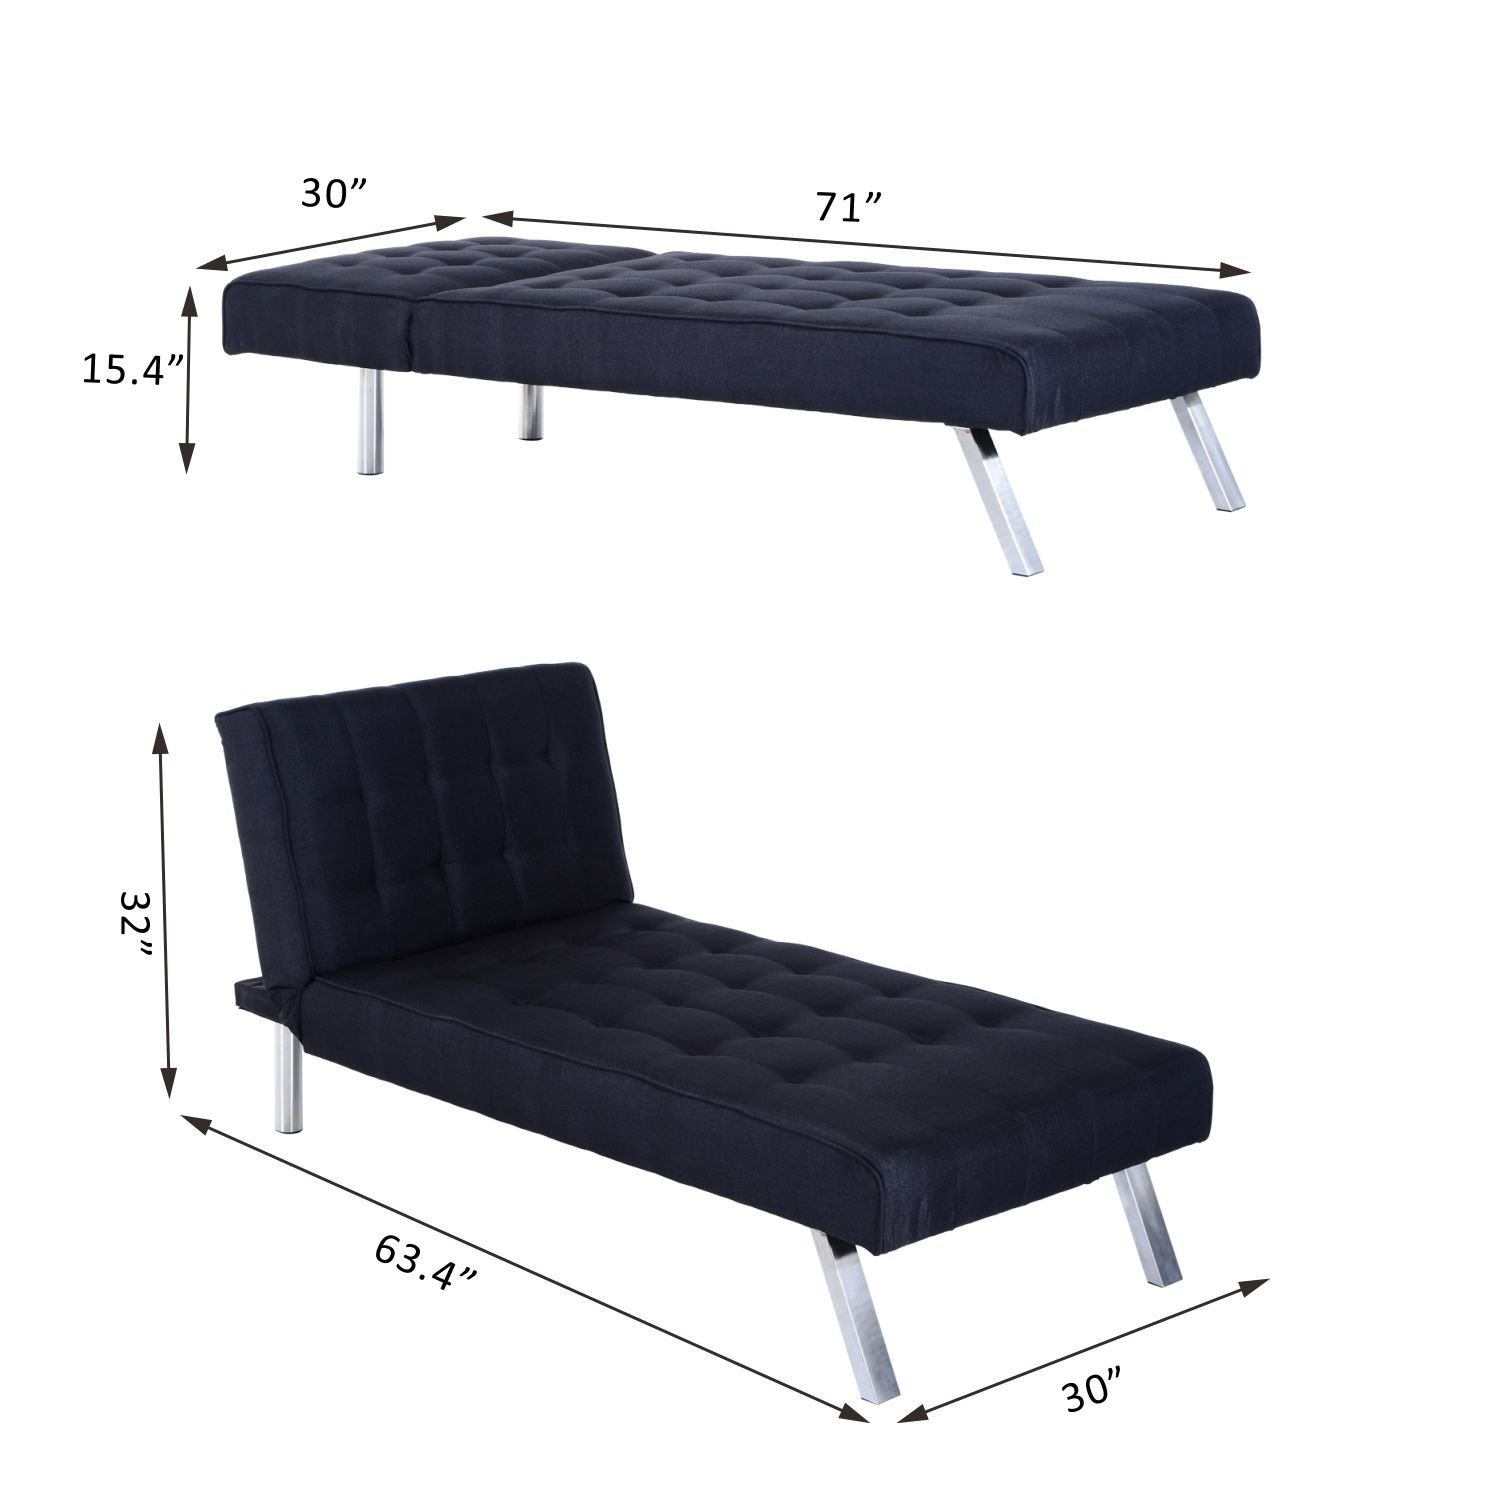 Generic NV_1008004203-BBL-US51 8yh4203yh Bedroom Seat Living Room Sofa Loung Chaise Lounge Chair Chaise Lo Sofa Lounger ure Moder Furniture Modern e Chair F Couch Bedroom Seat